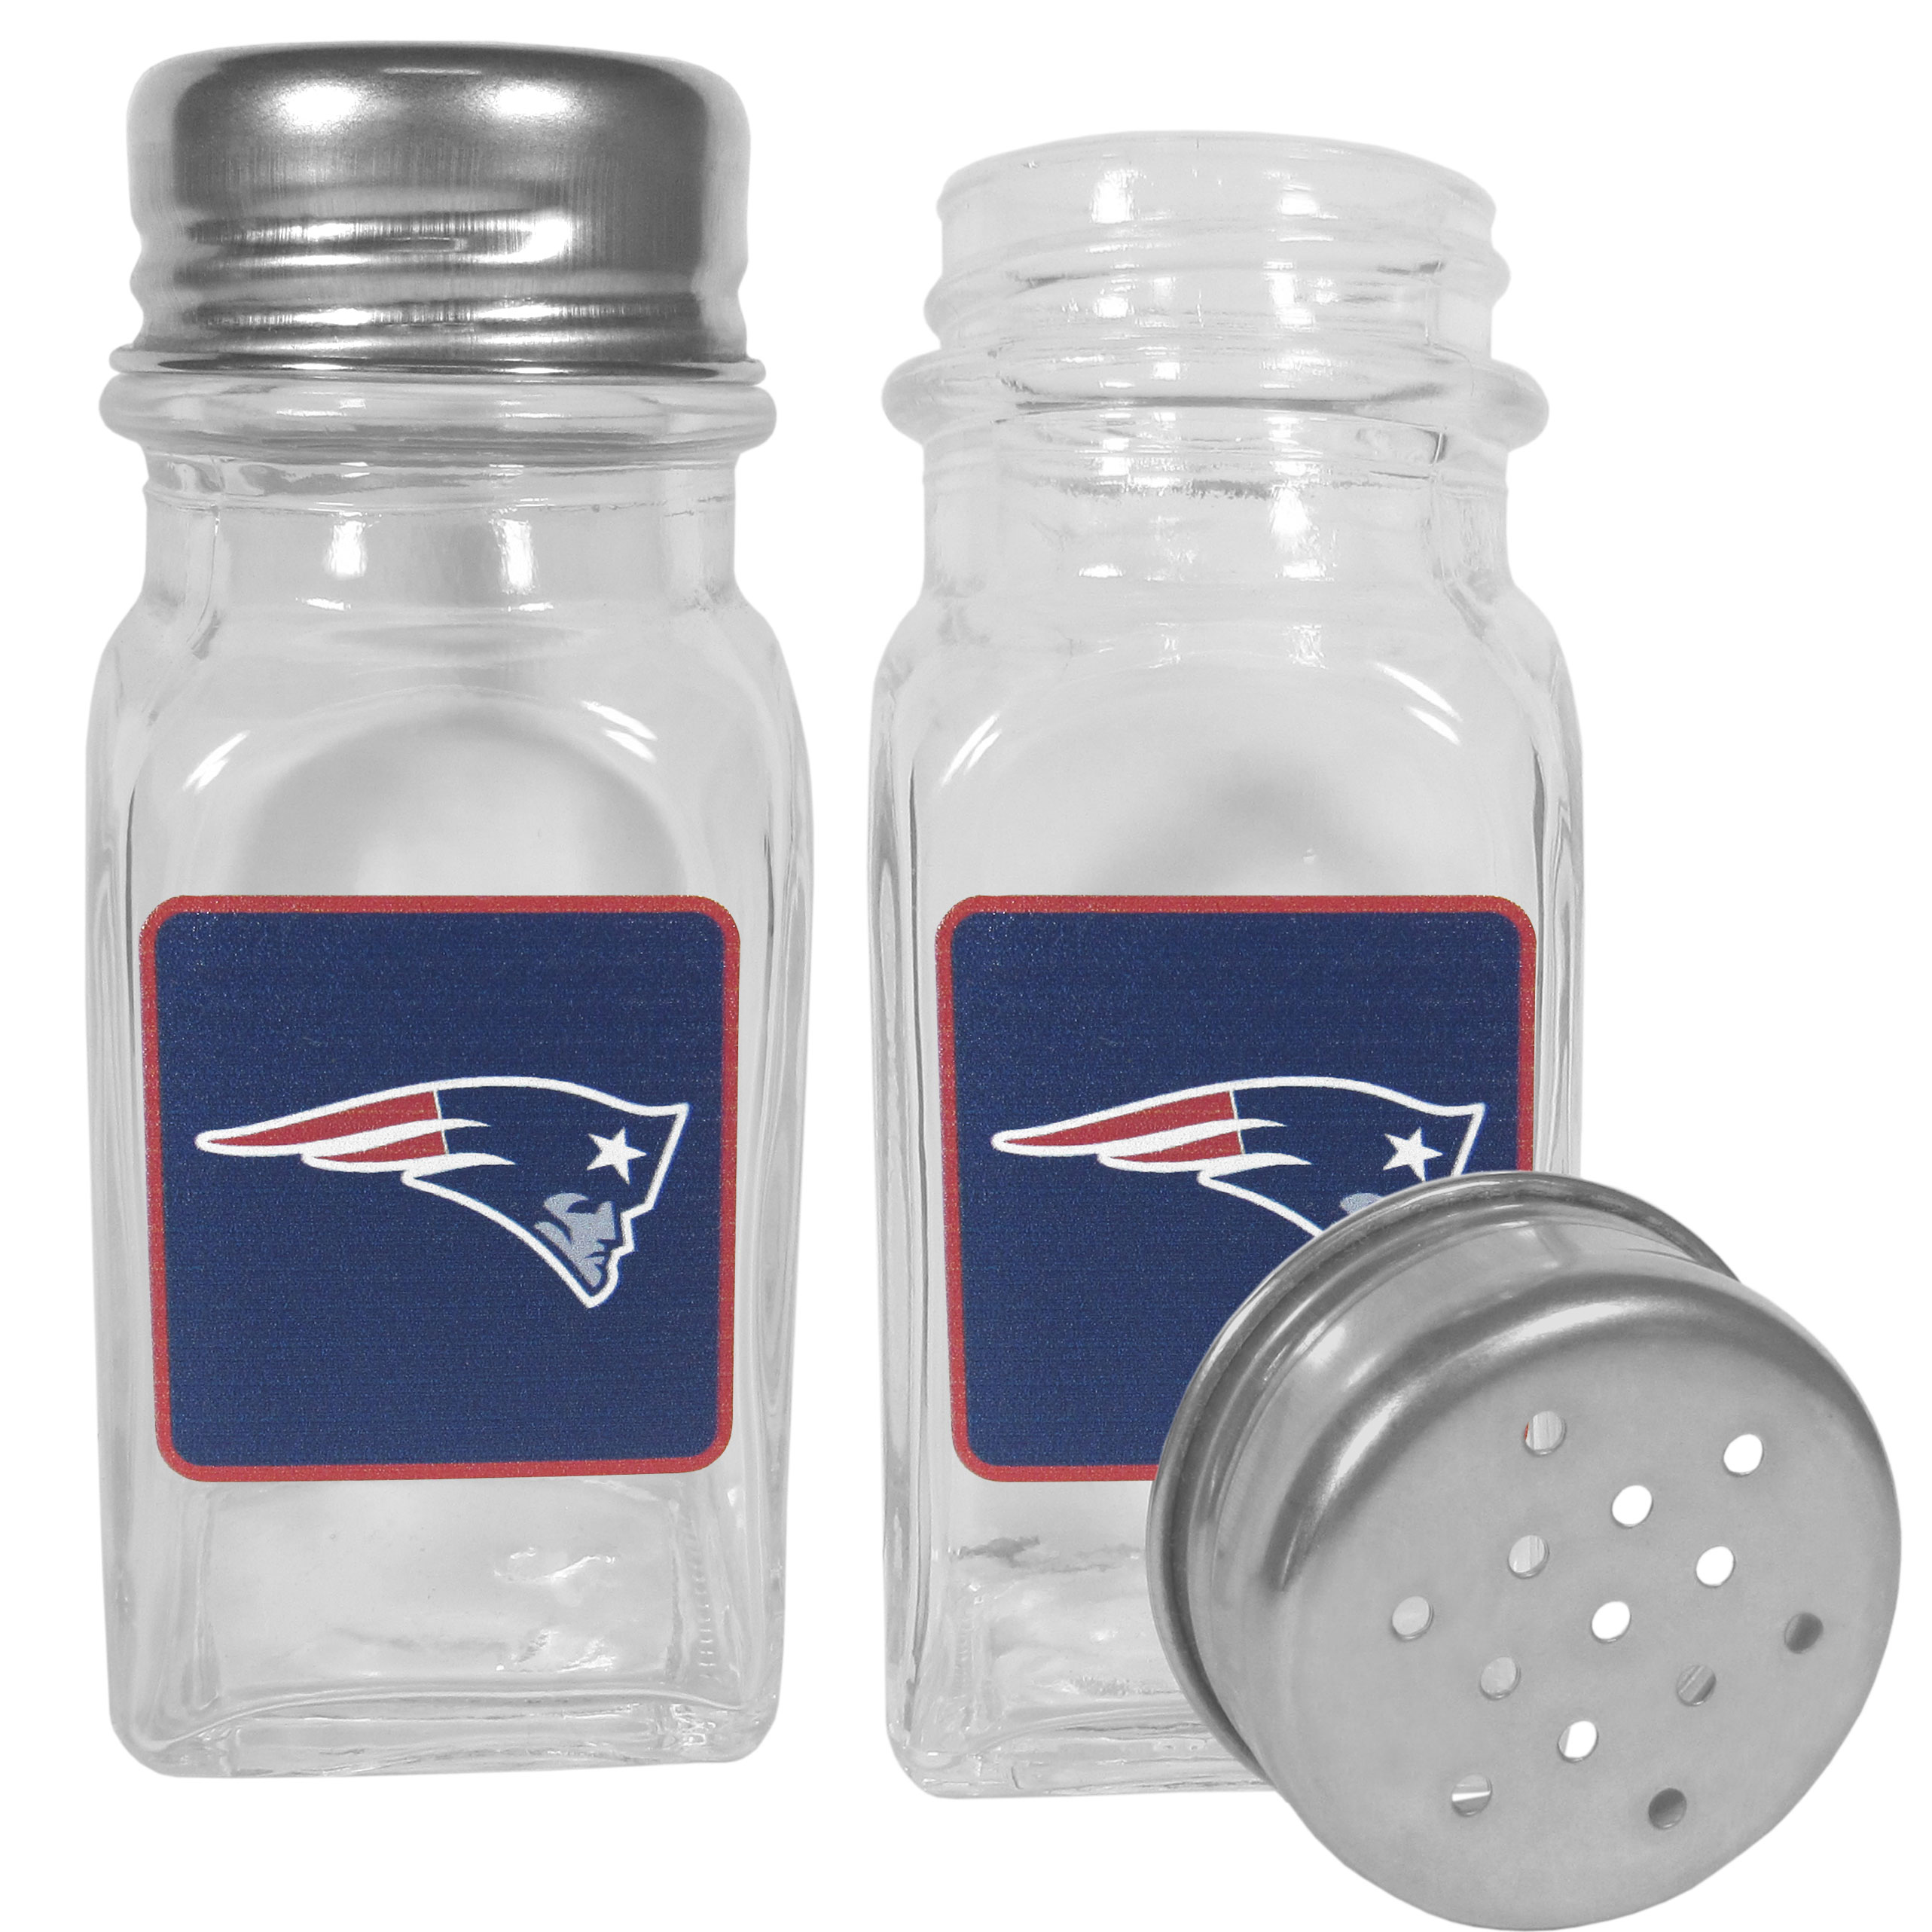 New England Patriots Graphics Salt & Pepper Shaker - No tailgate party is complete without your New England Patriots salt & pepper shakers featuring bright team logos. The diner replica salt and pepper shakers are glass with screw top lids. These team shakers are a great grill accessory whether you are barbecuing on the patio, picnicing or having a game day party.